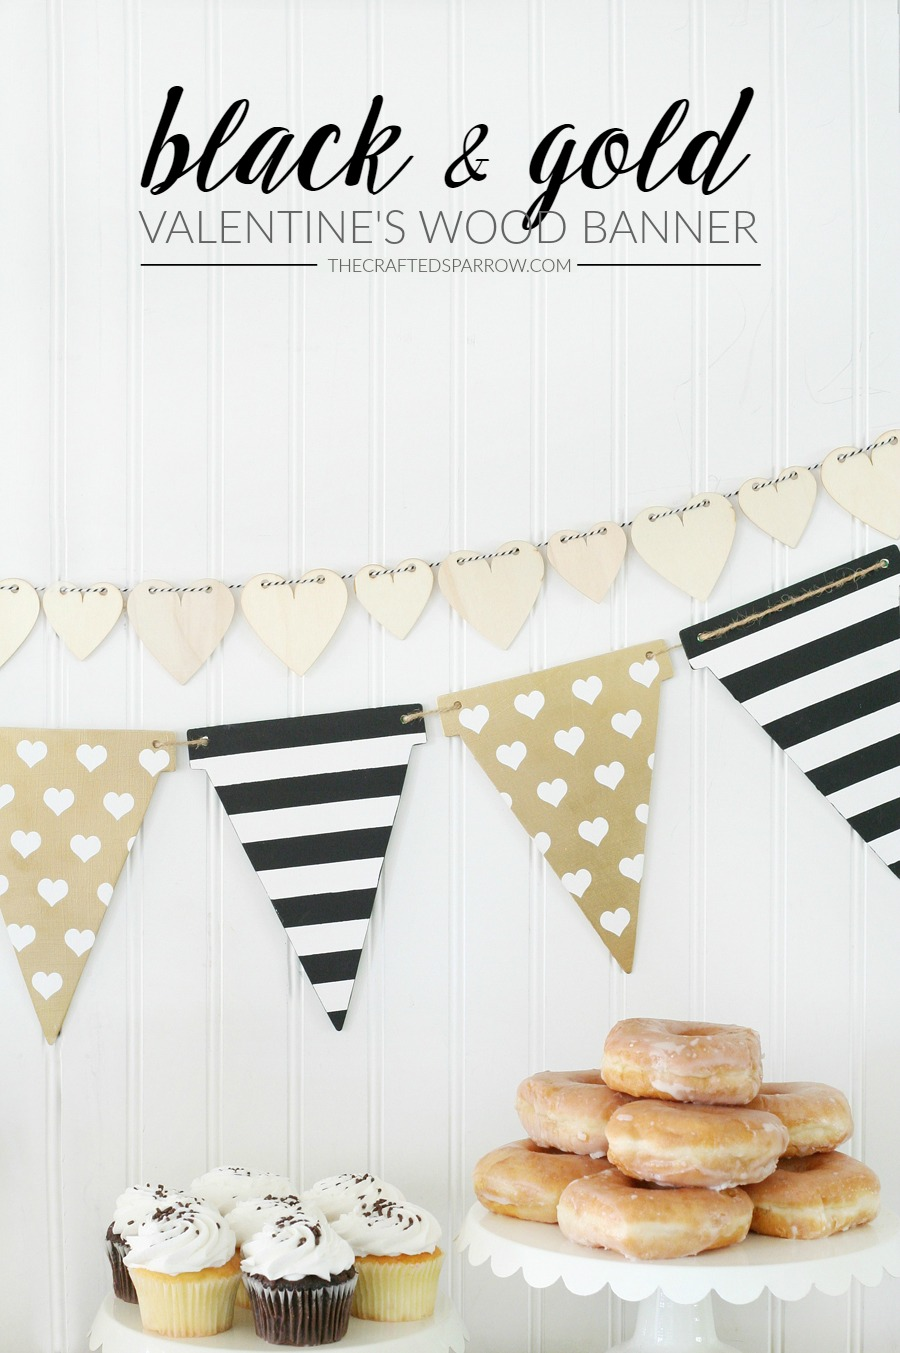 Valentine's Black & Gold Wood Banner